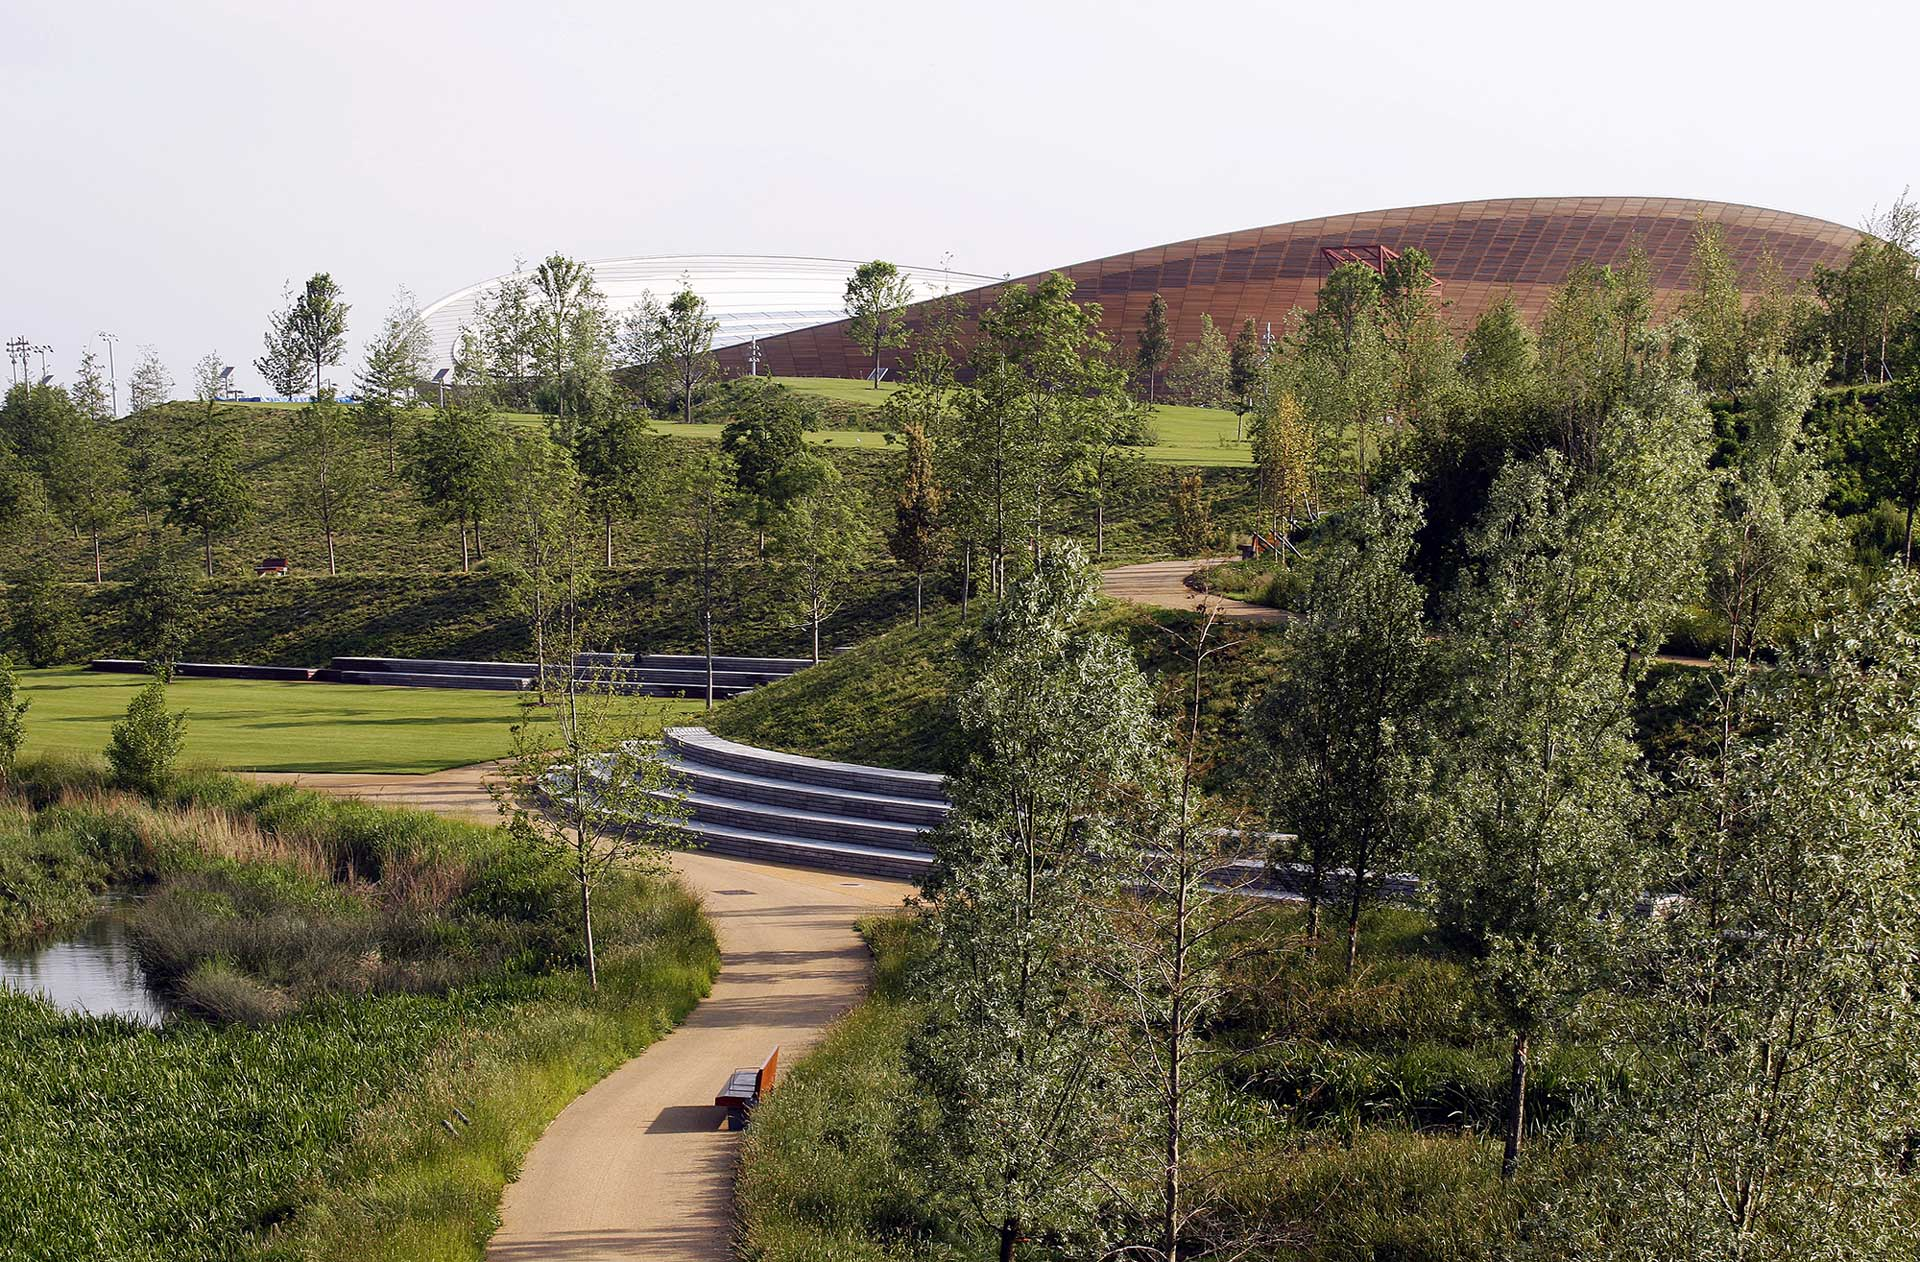 Queen elizabeth olympic park 01 landscape architecture for Garden design queens park